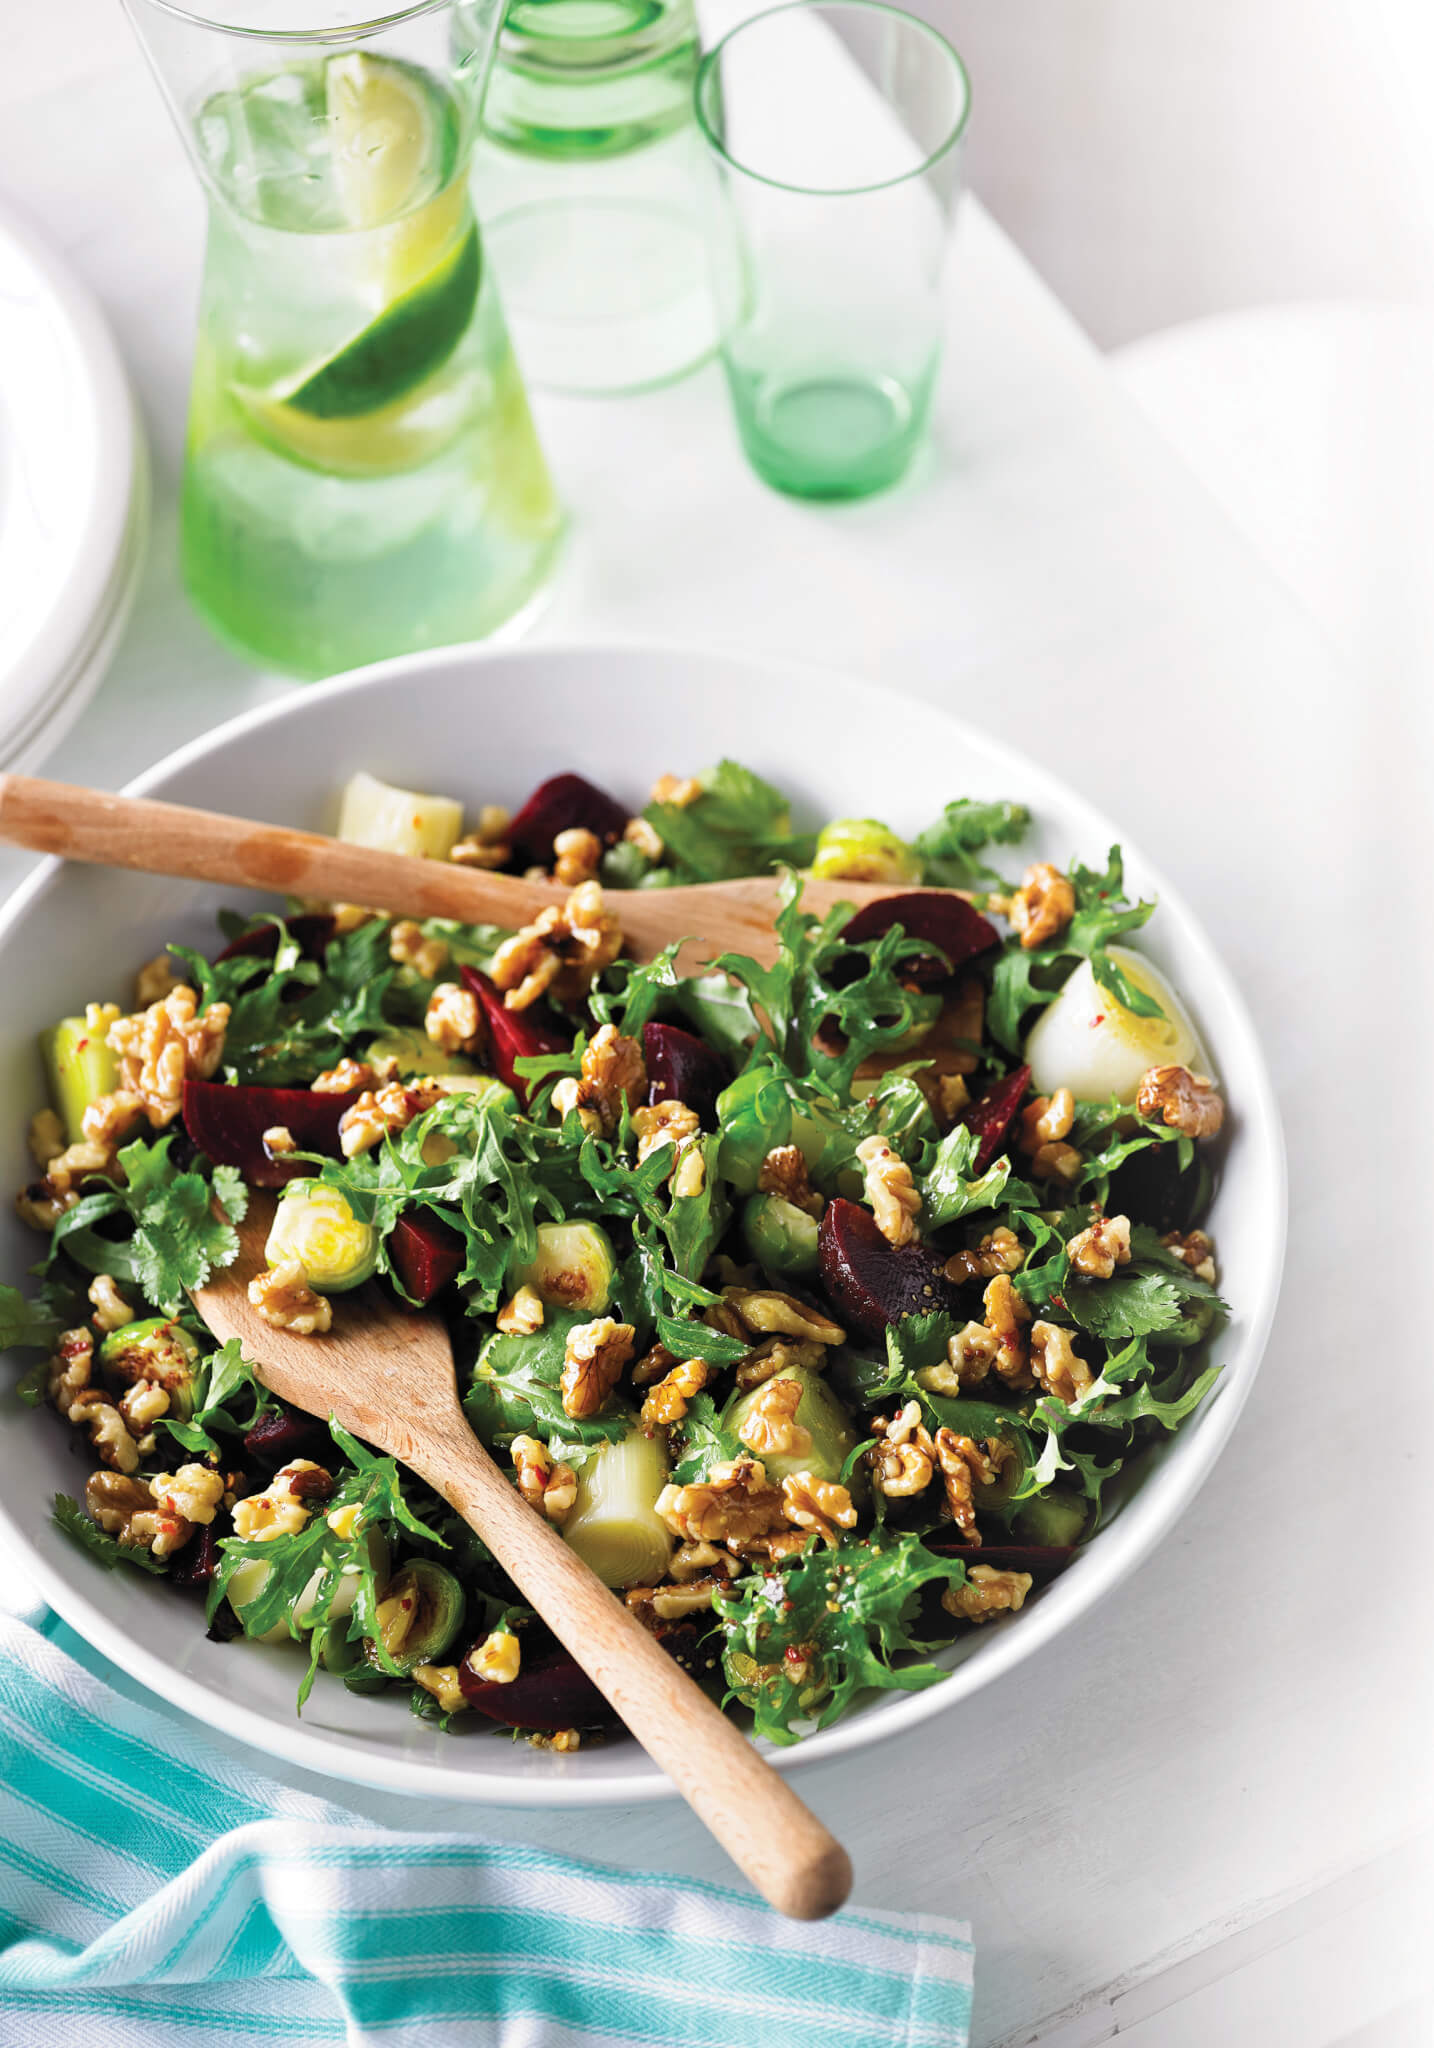 Embrace Meatless Monday: A Roast Beet & Kale Salad Recipe ...